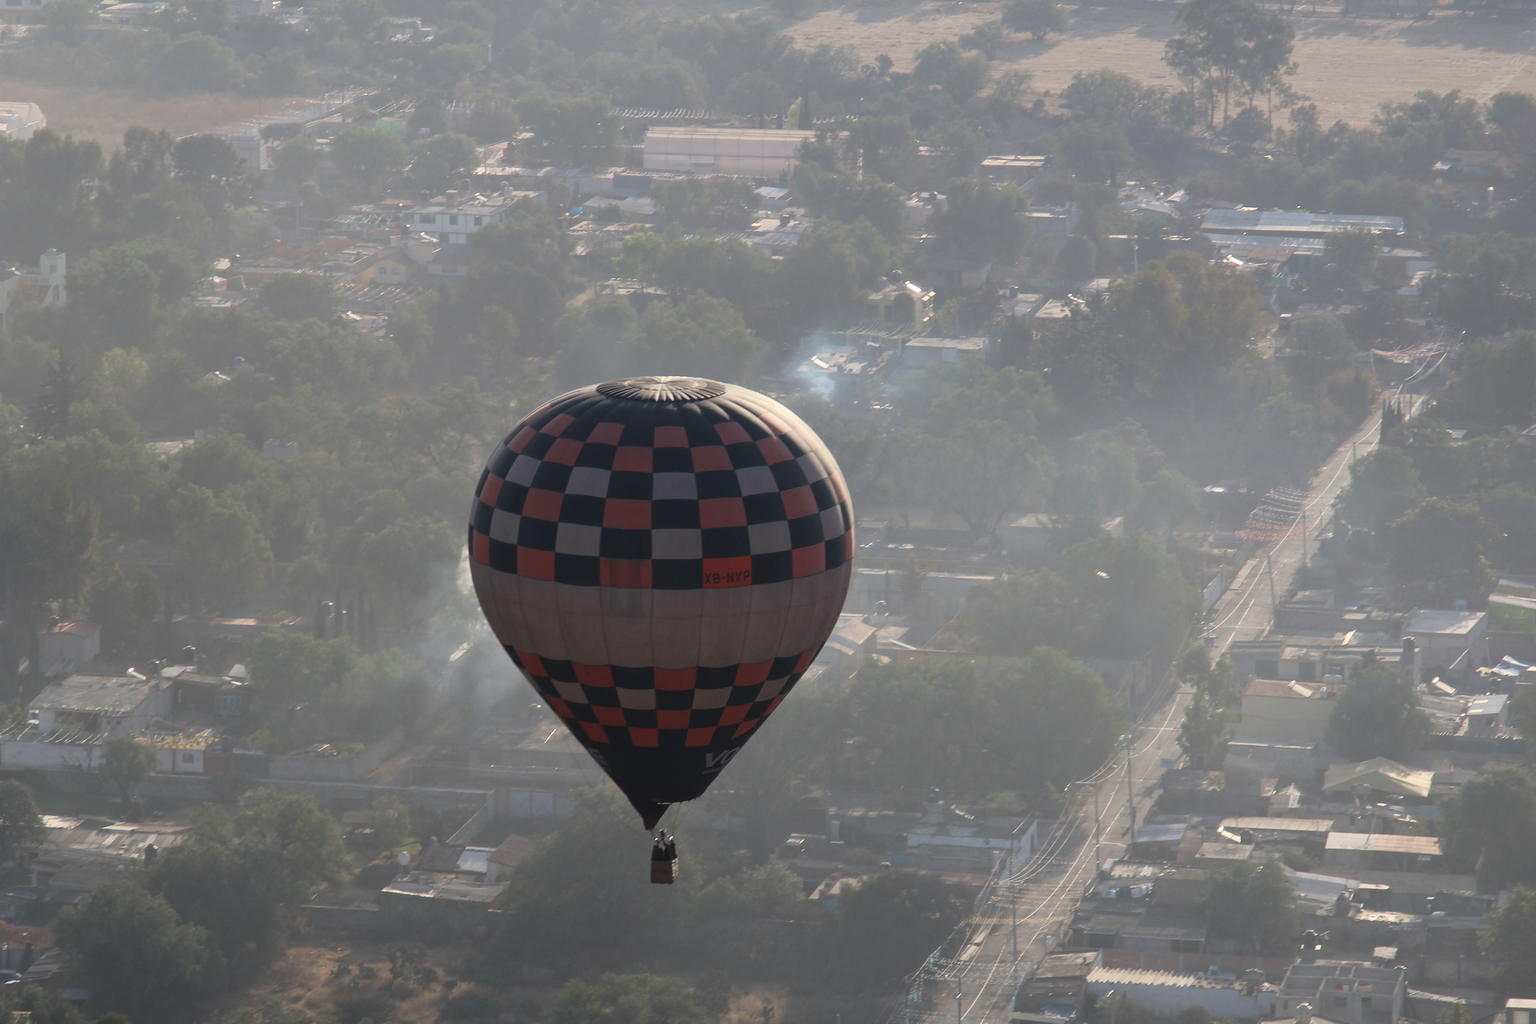 MAIS FOTOS, Full-Day Teotihuacan Hot Air Balloon Tour from Mexico City